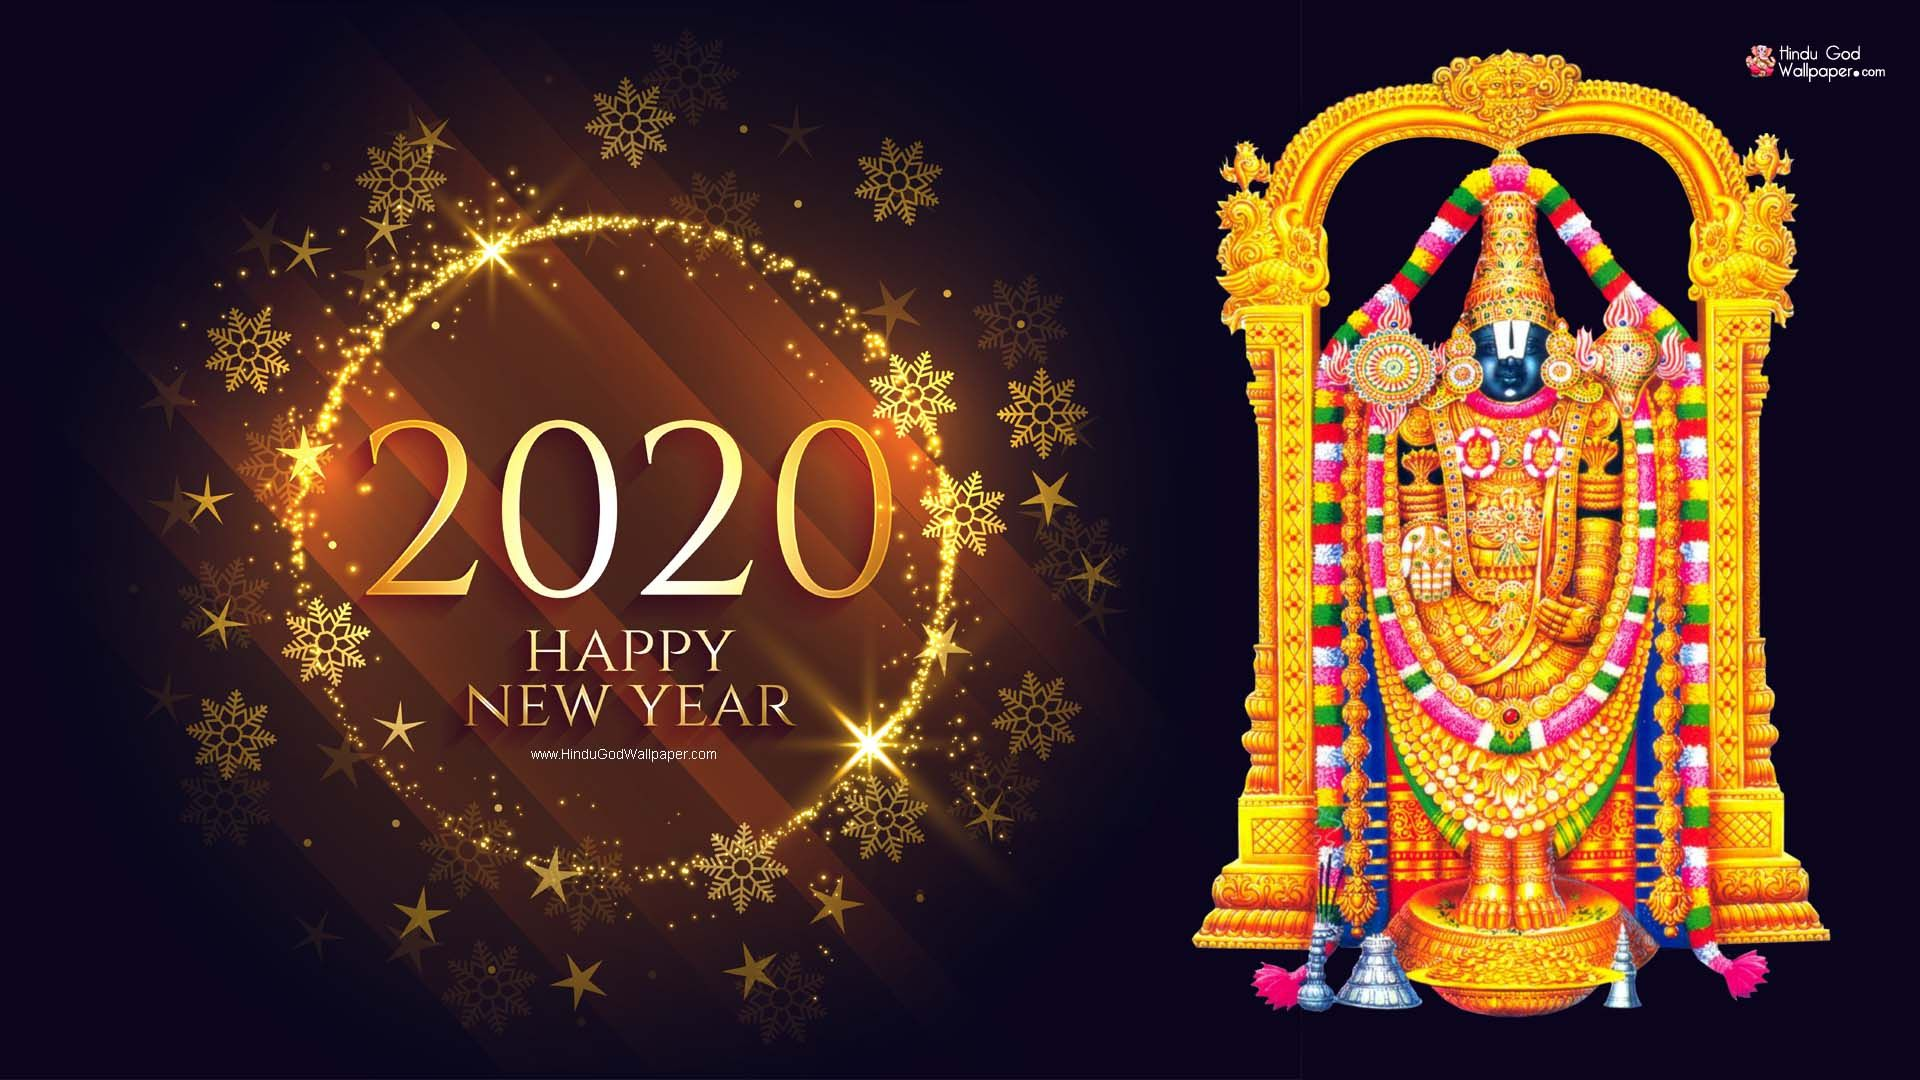 Happy New Year 2020 Free Download Wallpaper